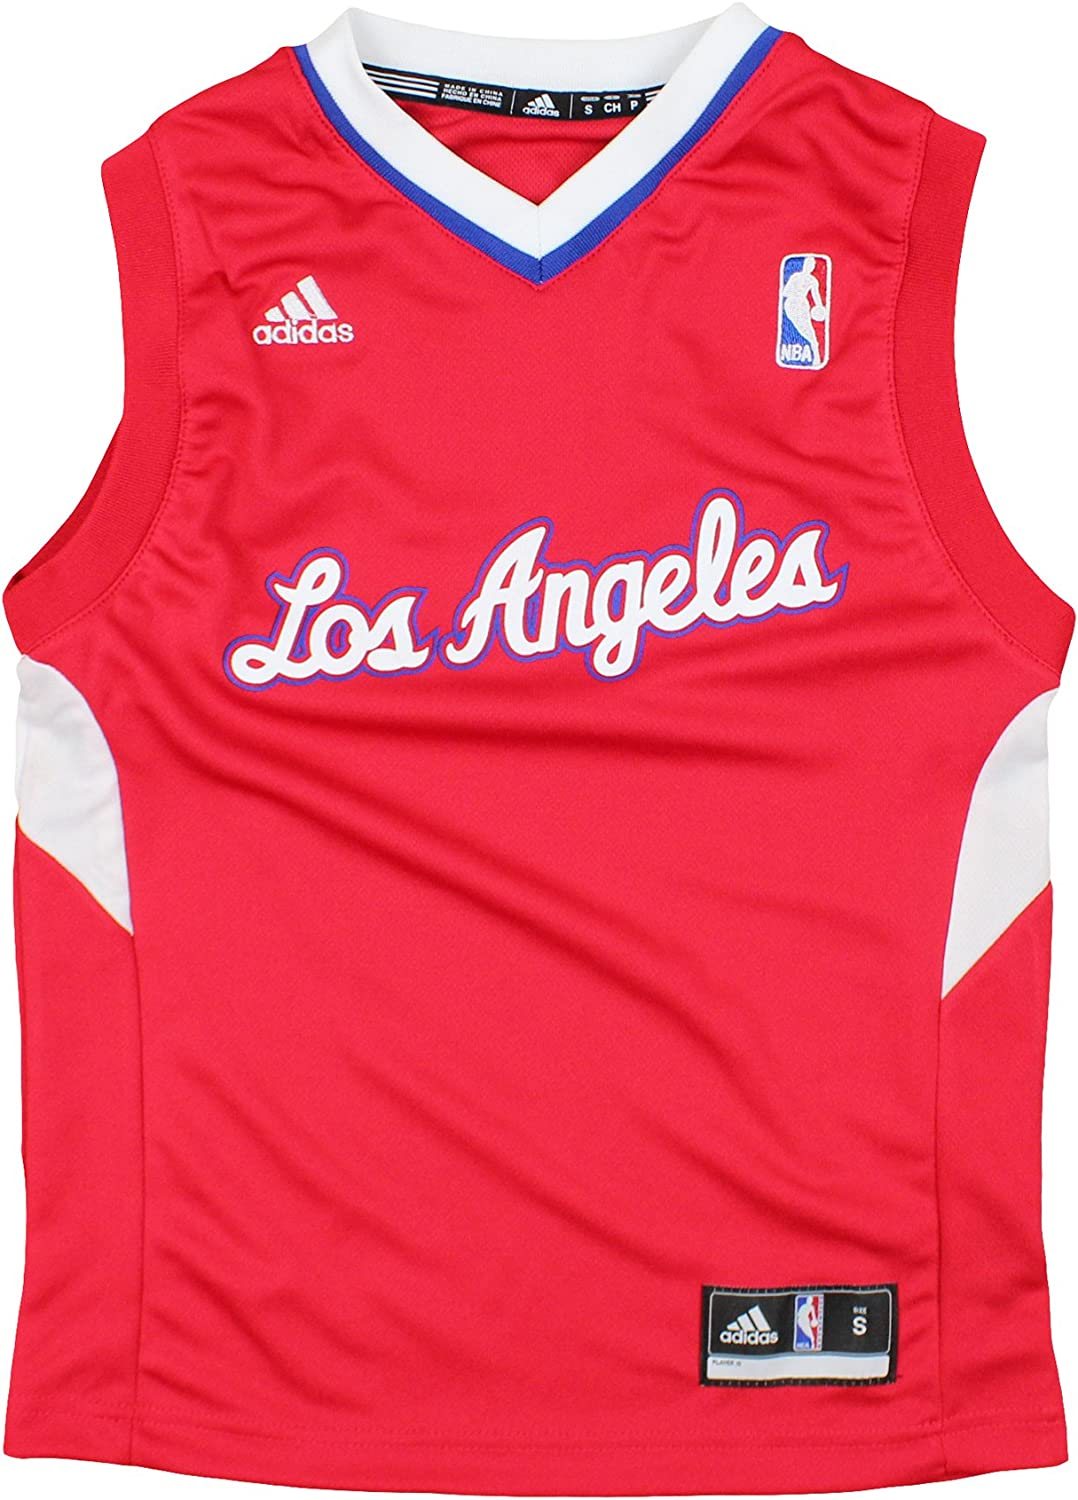 adidas Max 66% OFF Los Angeles Now free shipping Clippers NBA Youth Logo 8-20 Big Boys Team